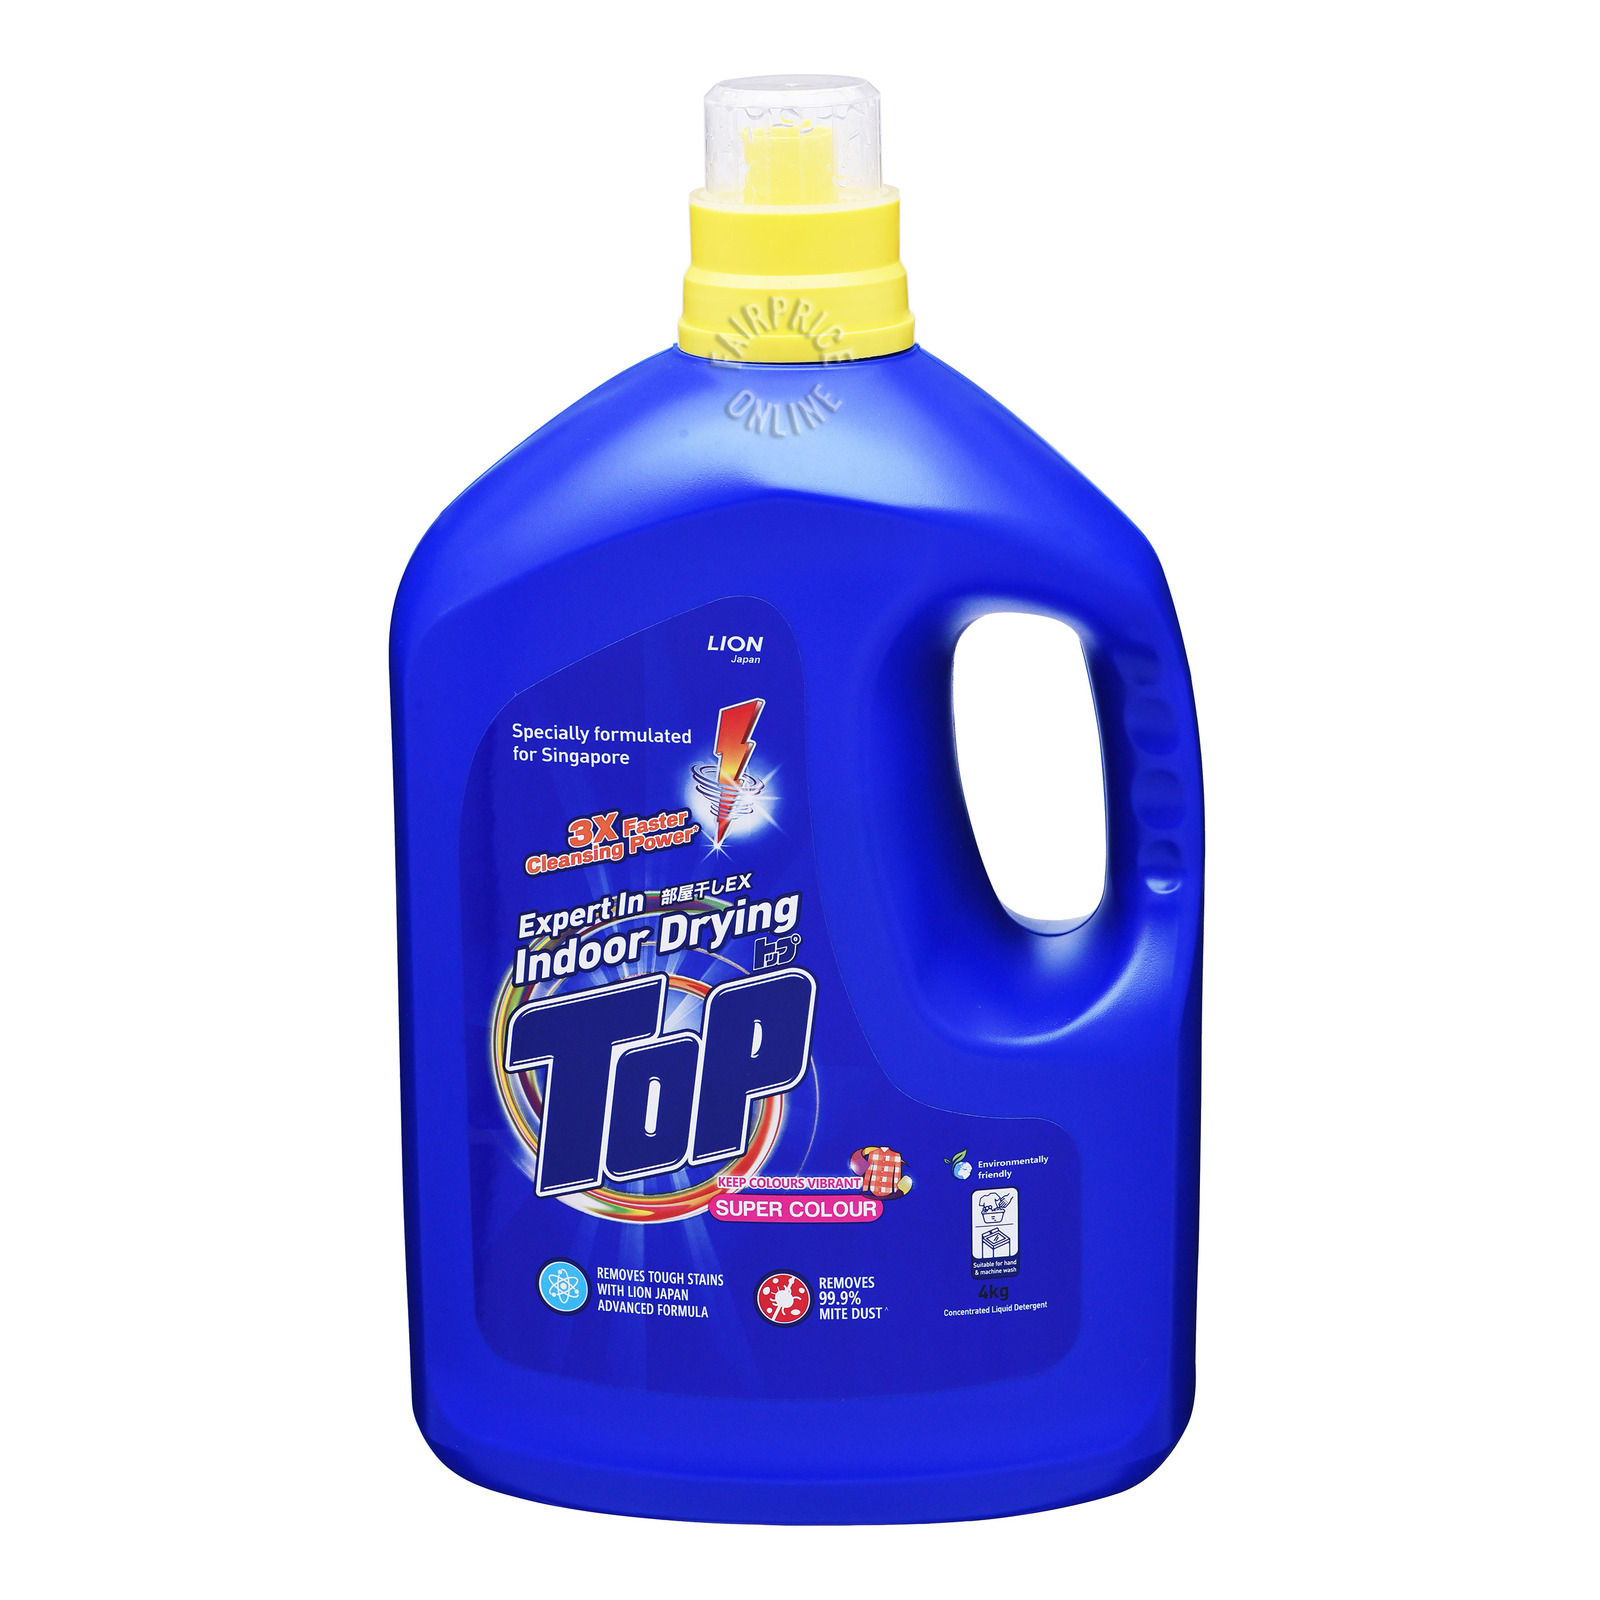 Top Concentrated Liquid Detergent Bottle - Super Colour